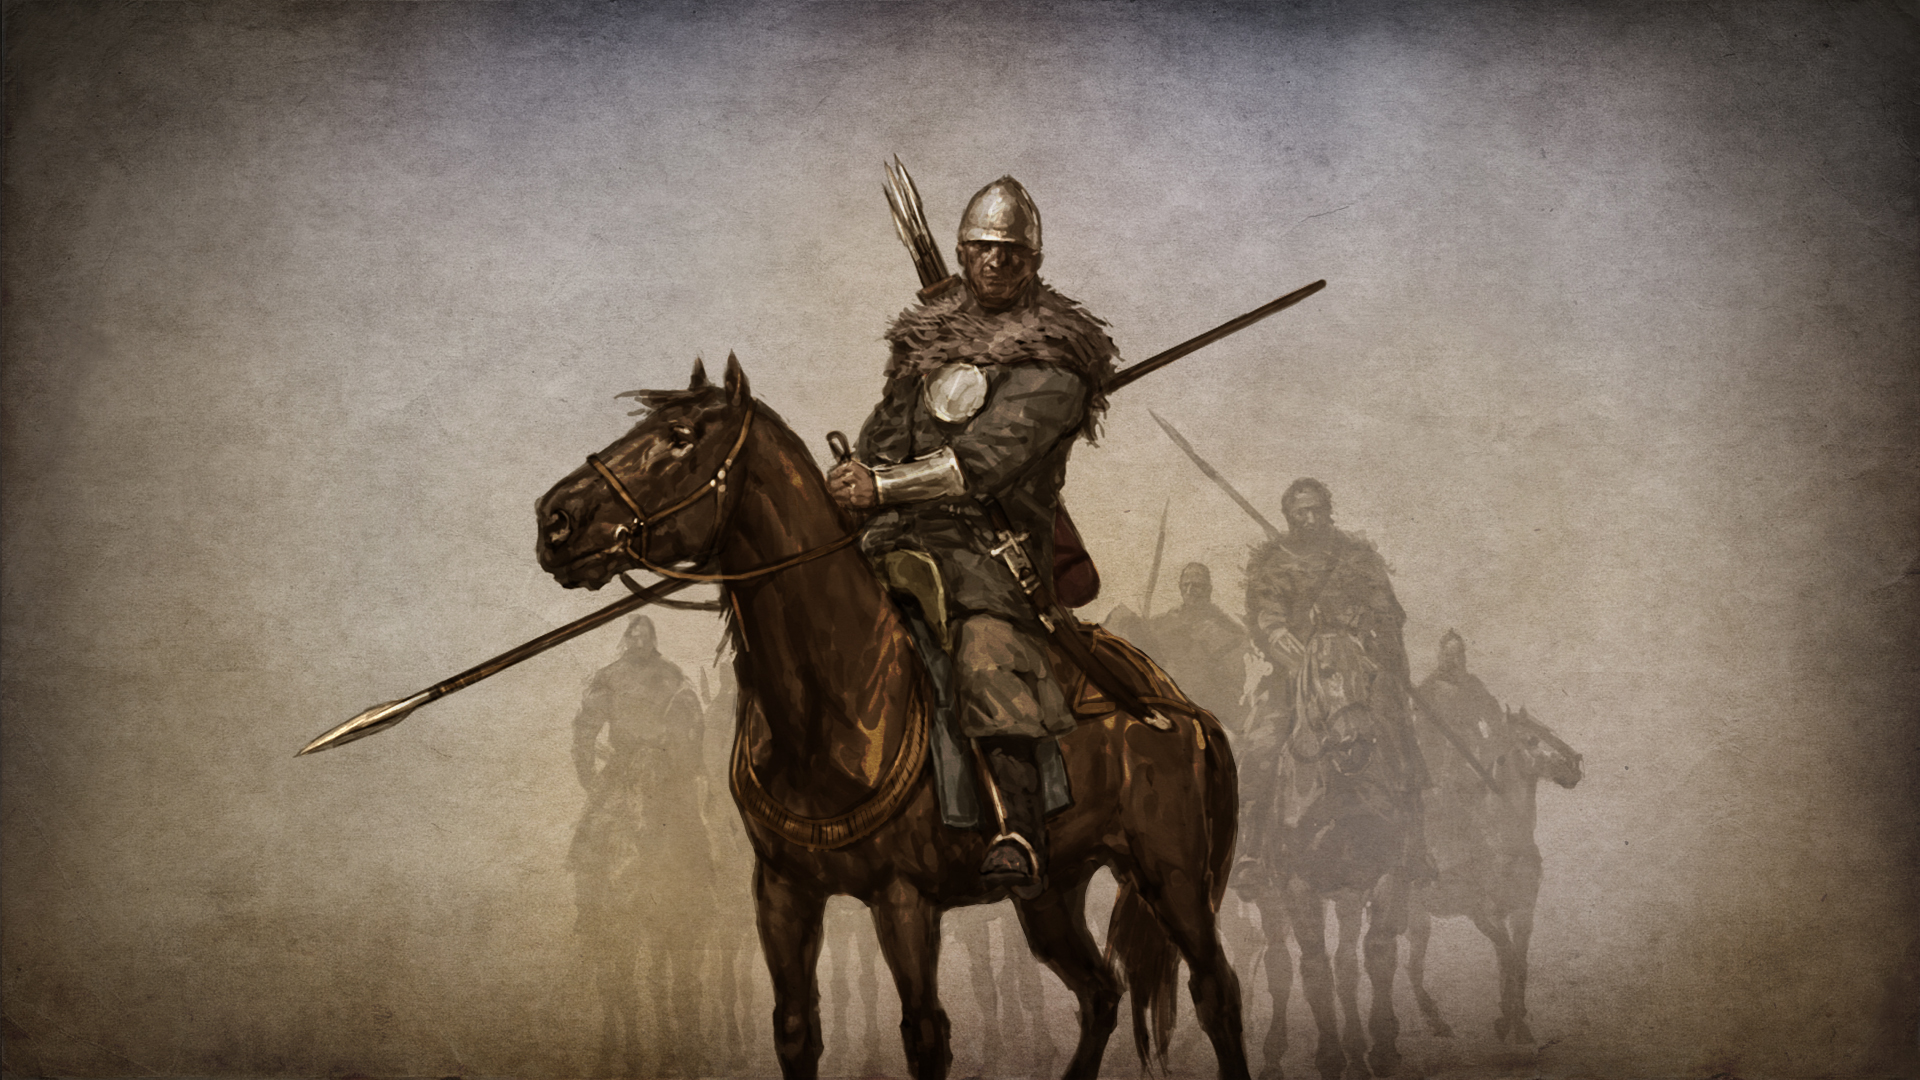 MOUNT AND BLADE fantasy warrior armor horse h wallpaper | 1920x1080 | 225454 | WallpaperUP